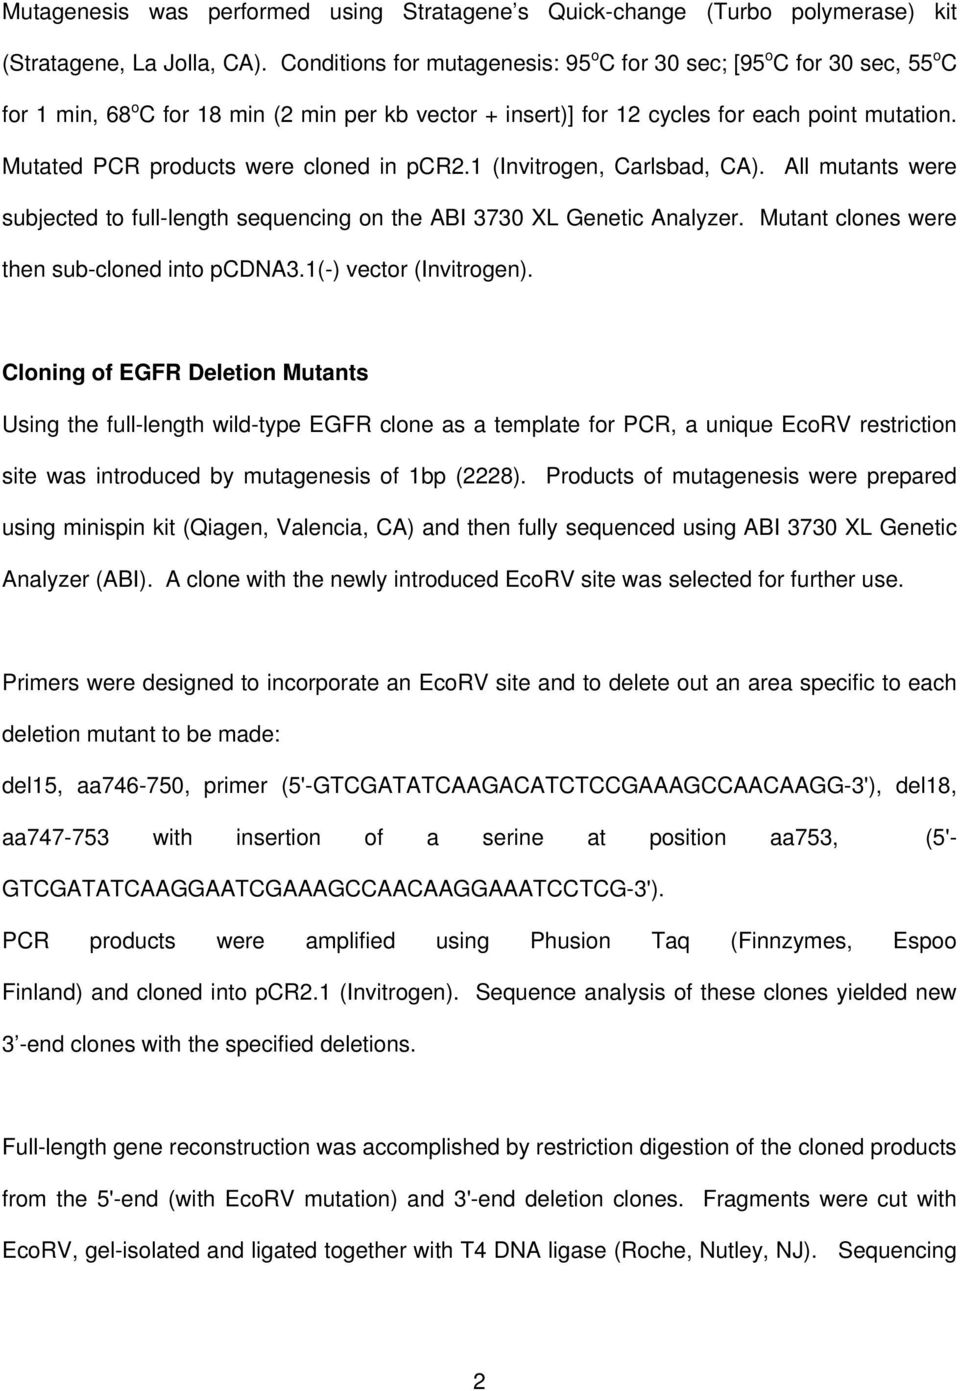 Mutated PCR products were cloned in pcr2.1 (Invitrogen, Carlsbad, CA). All mutants were subjected to full-length sequencing on the ABI 3730 XL Genetic Analyzer.